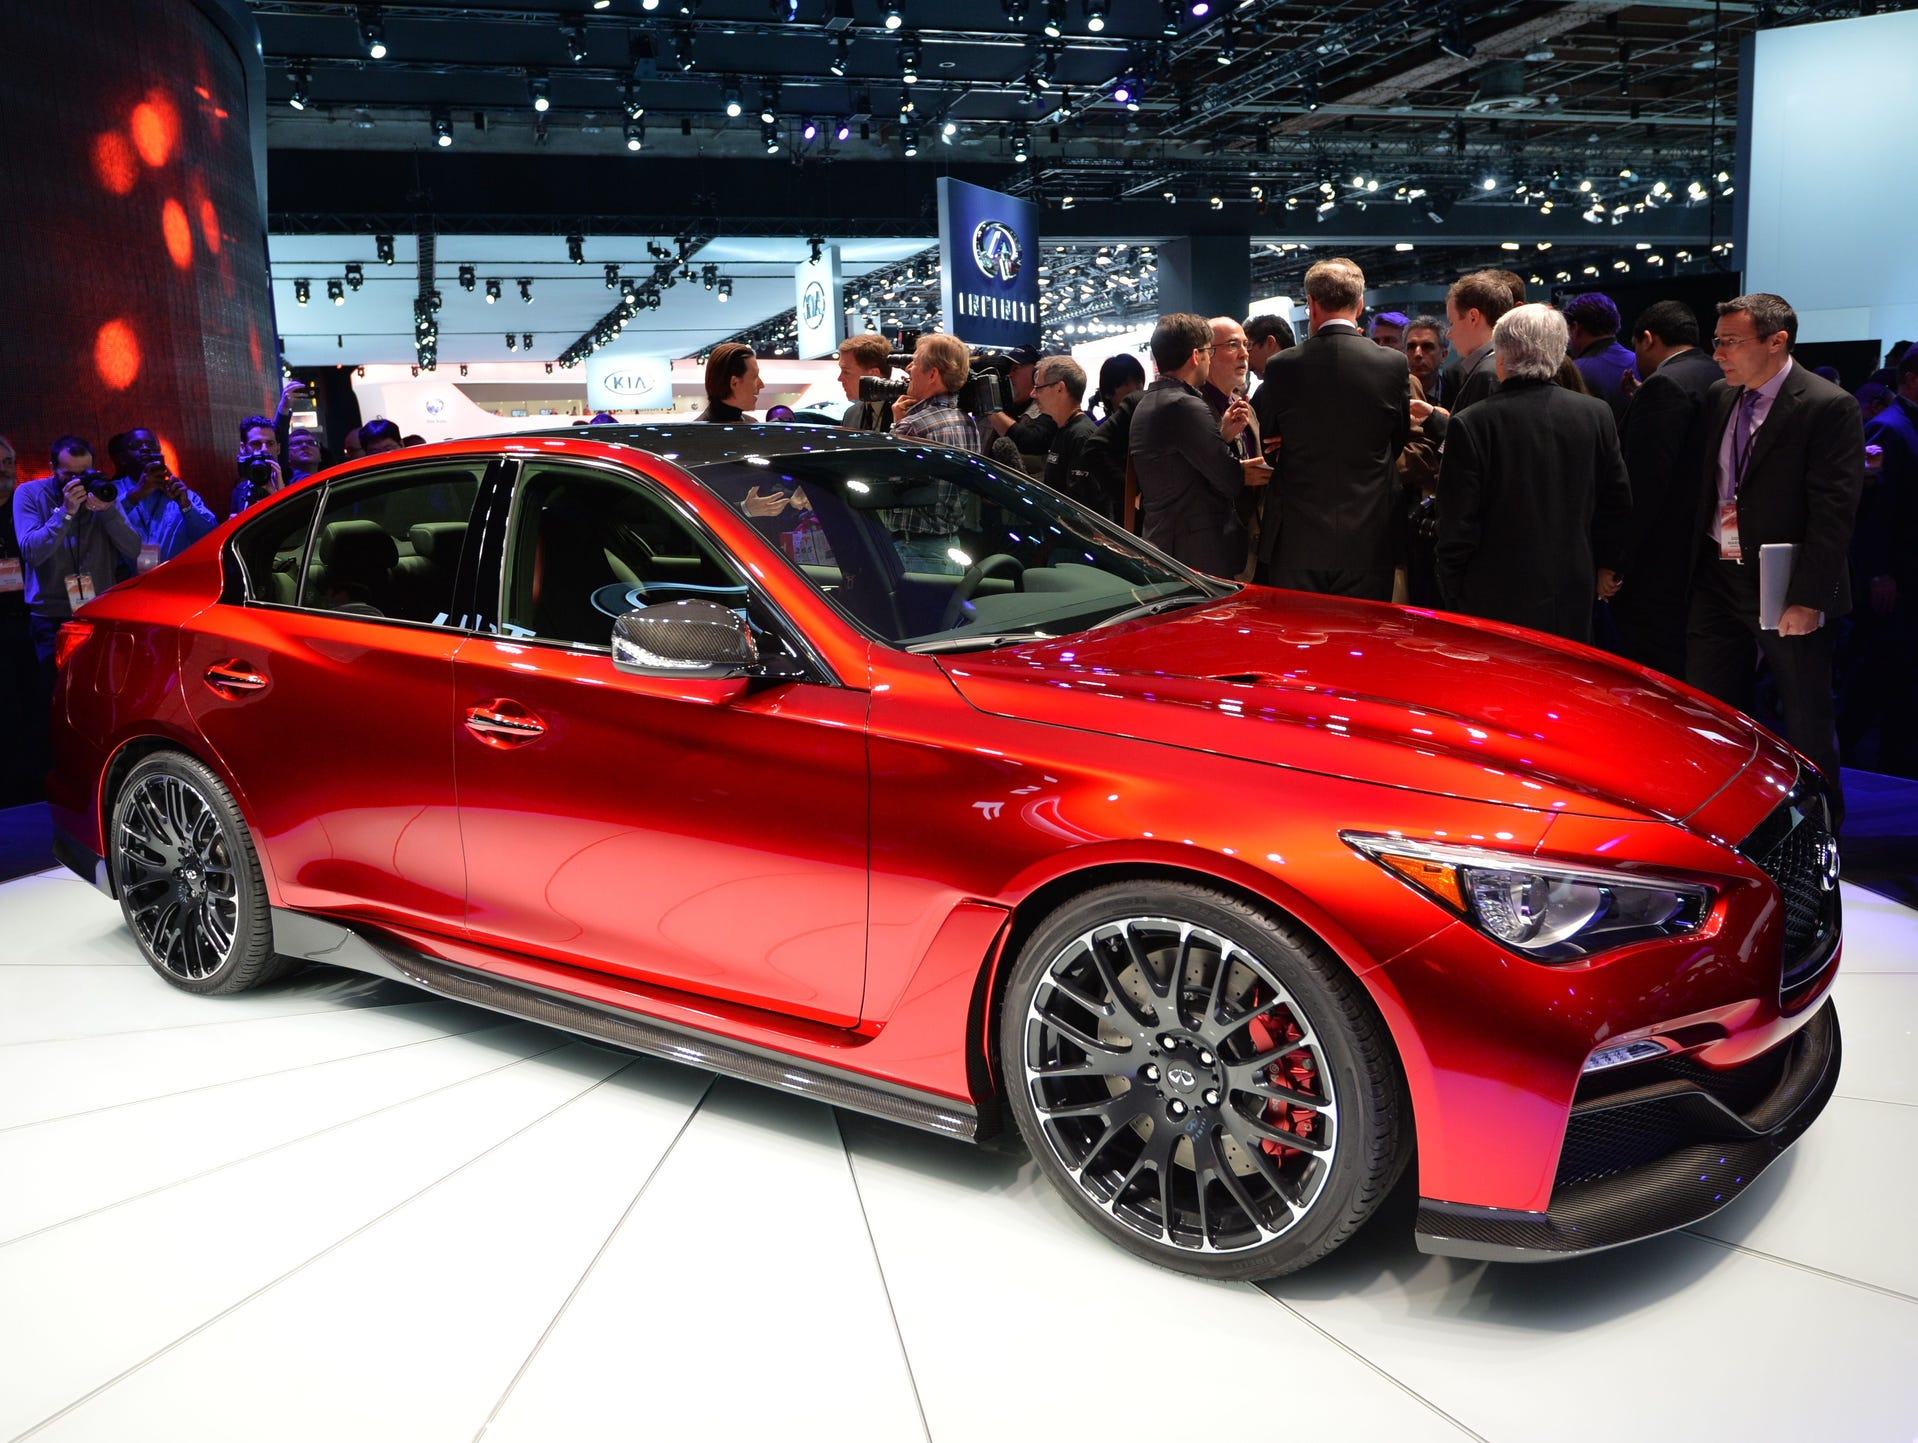 q50 concept car freaking awesome nissan forum. Black Bedroom Furniture Sets. Home Design Ideas